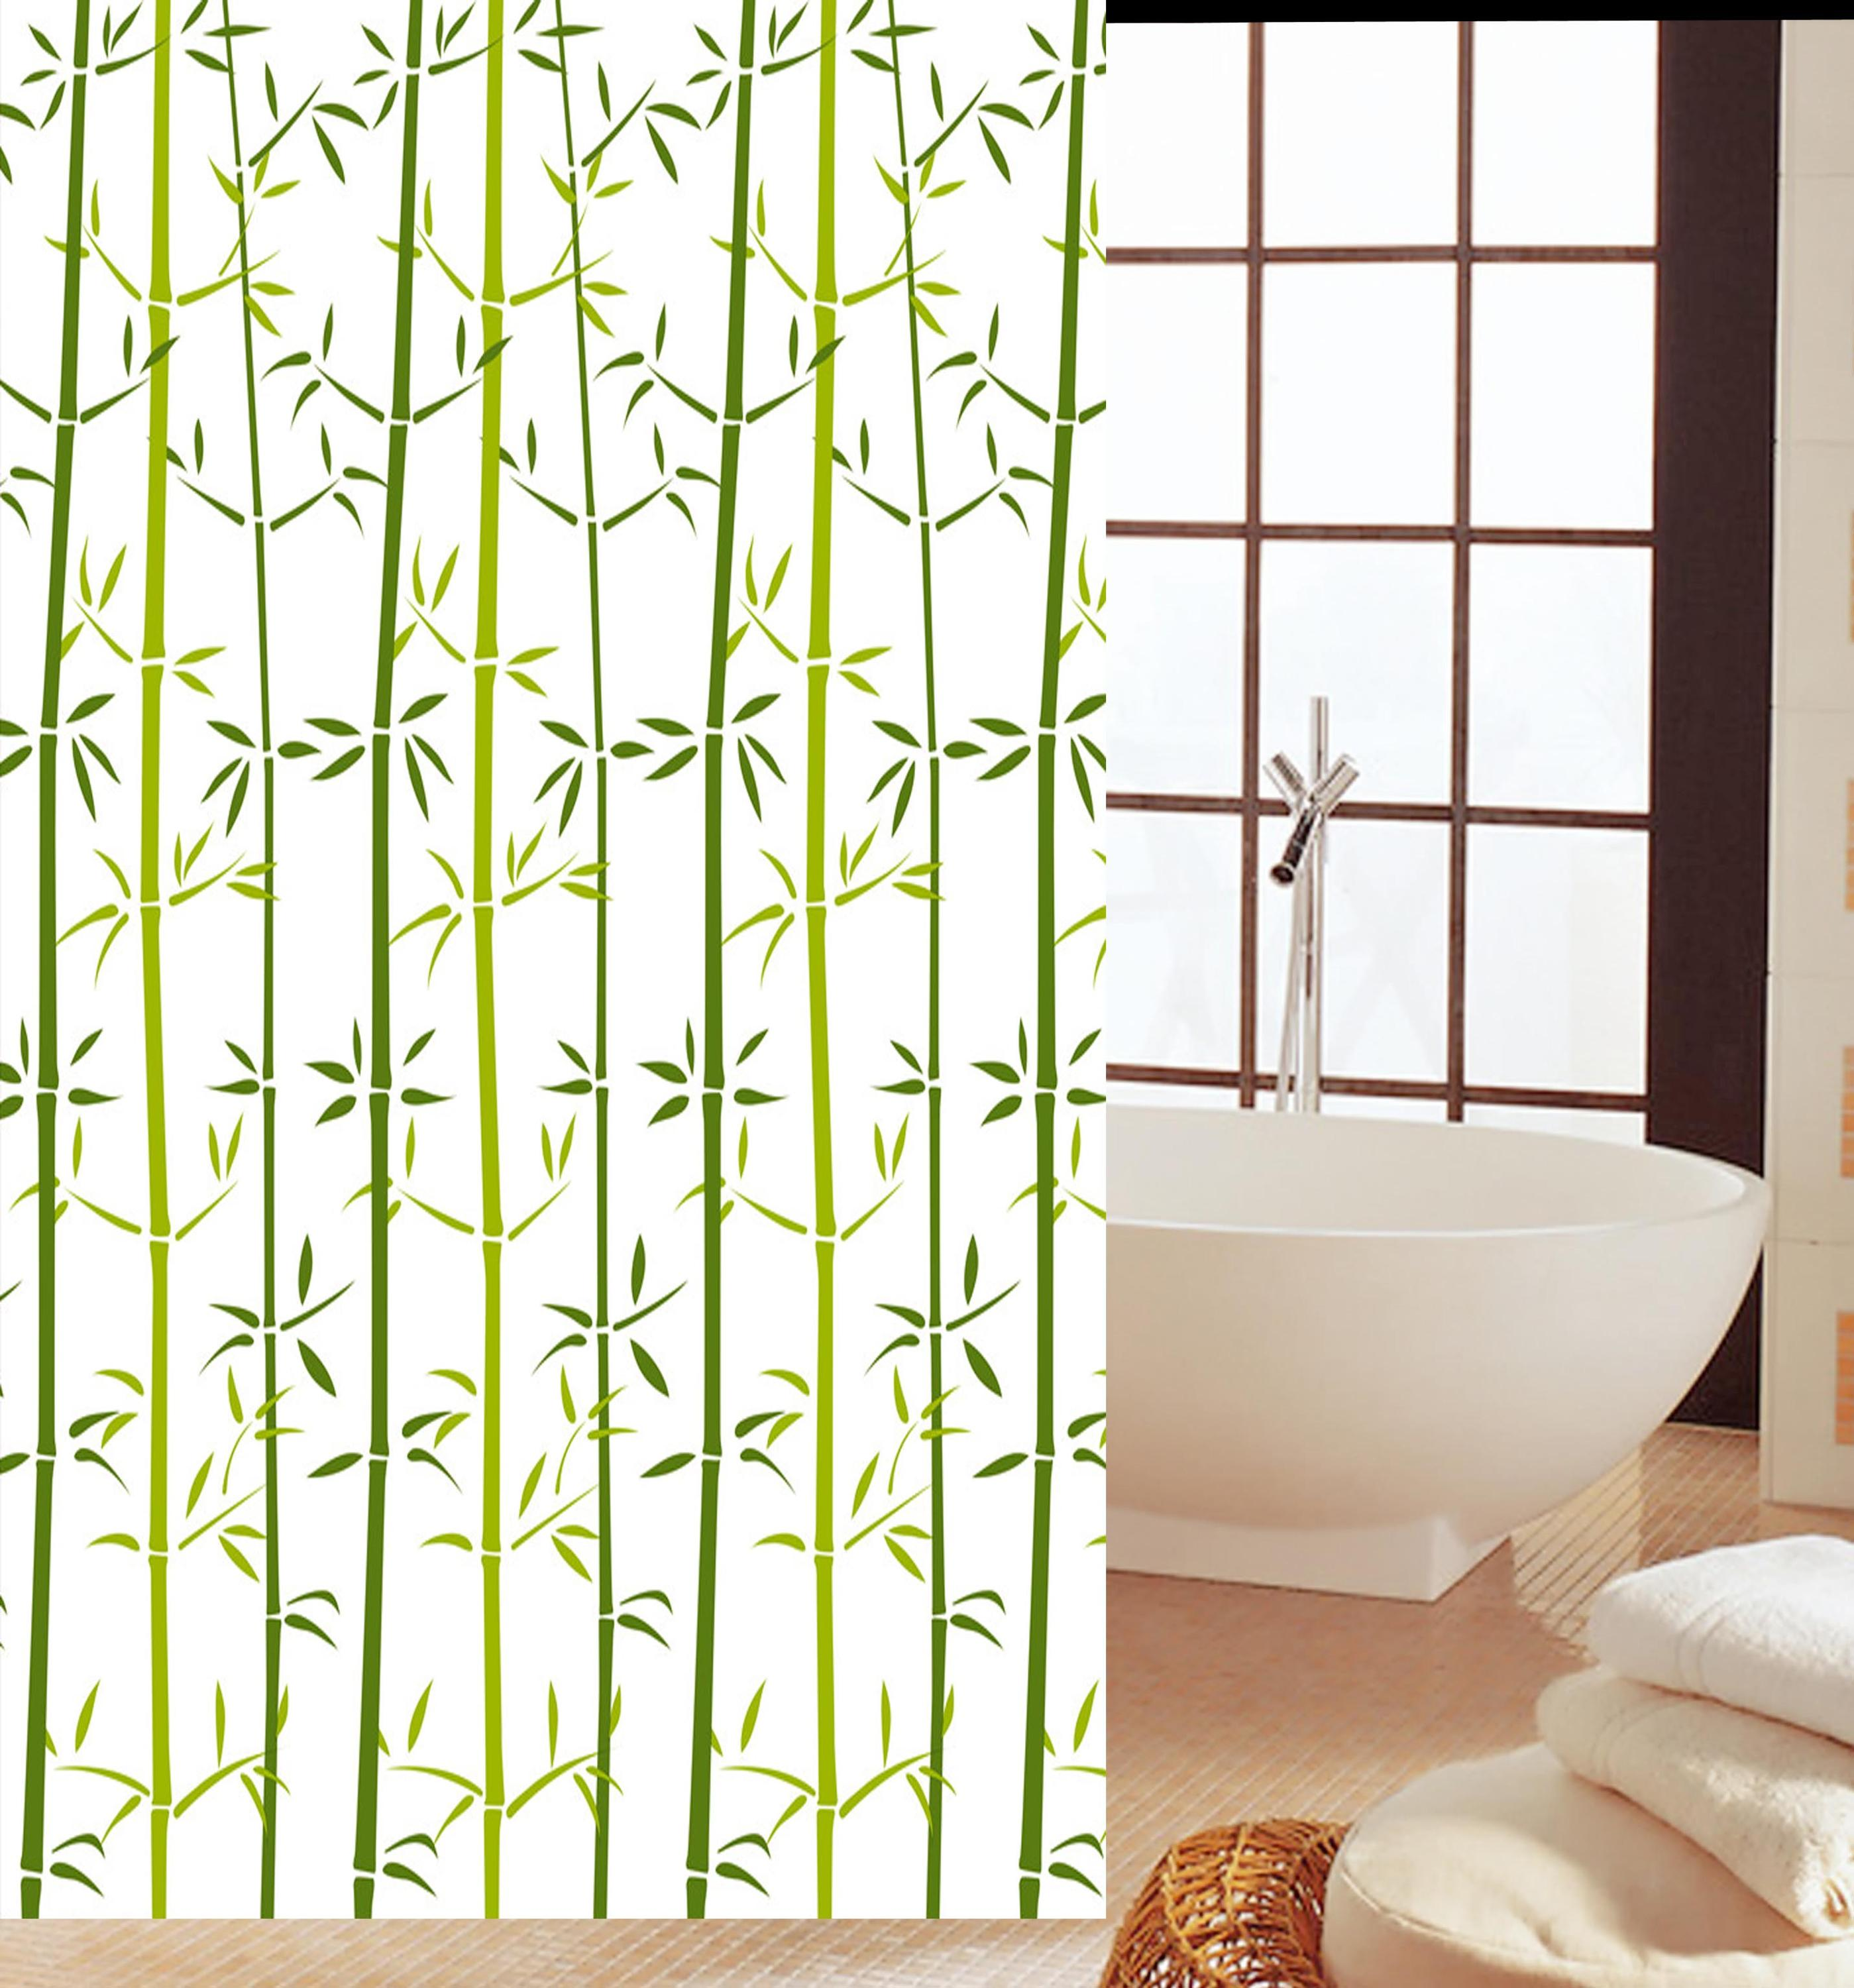 Manufacturers supply bamboo pattern Chinese style design PEVA shower curtain